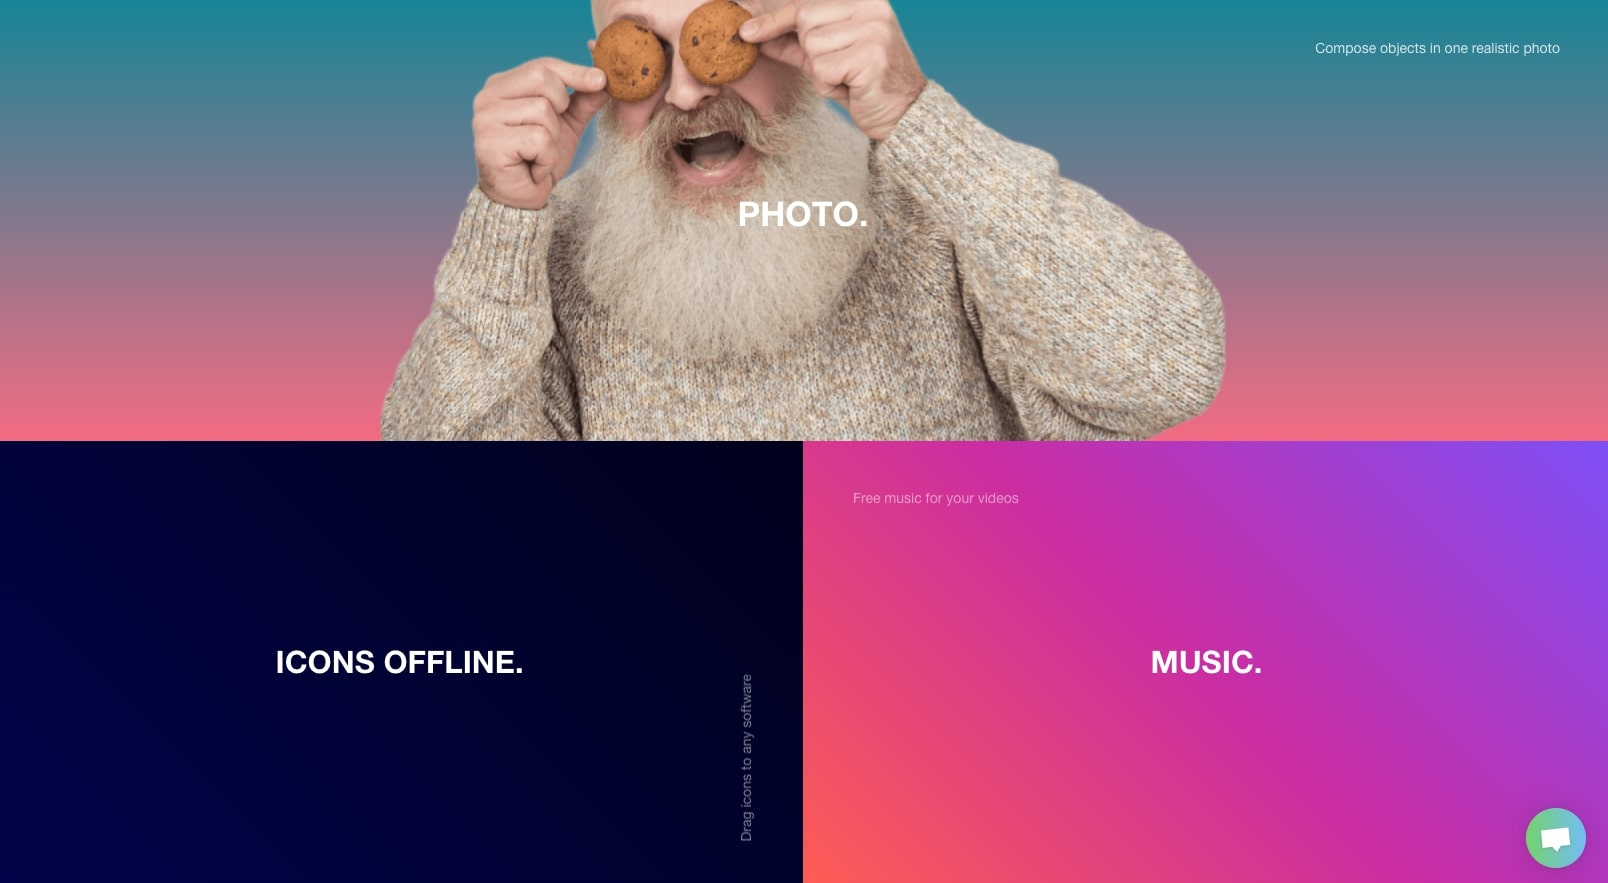 free stock photos, music, and icons